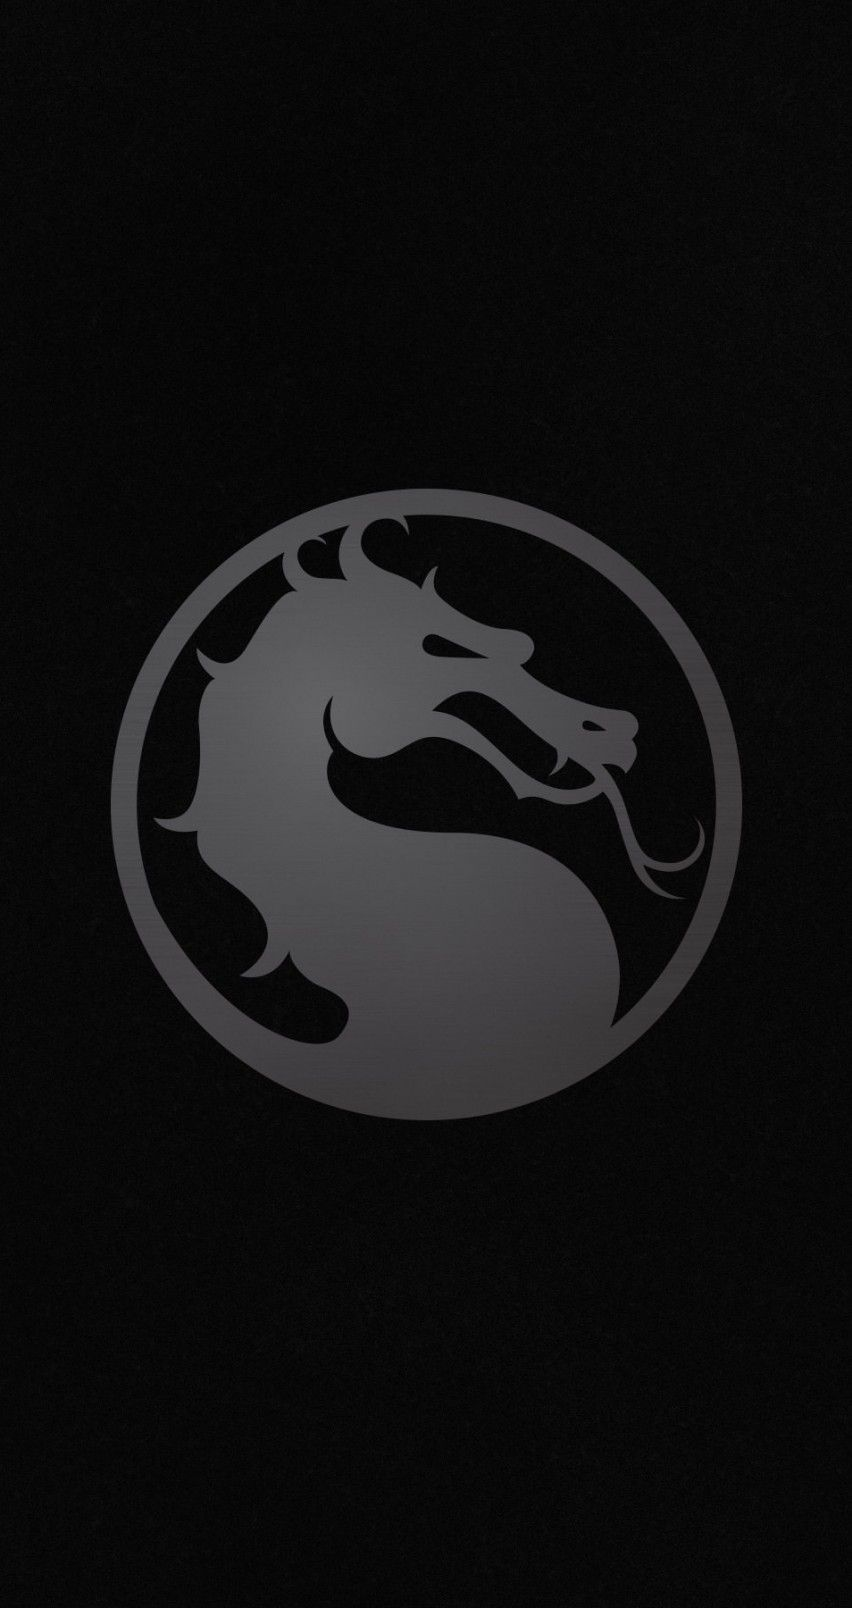 56 Mortal Kombat X Wallpaper Iphone On Wallpapersafari